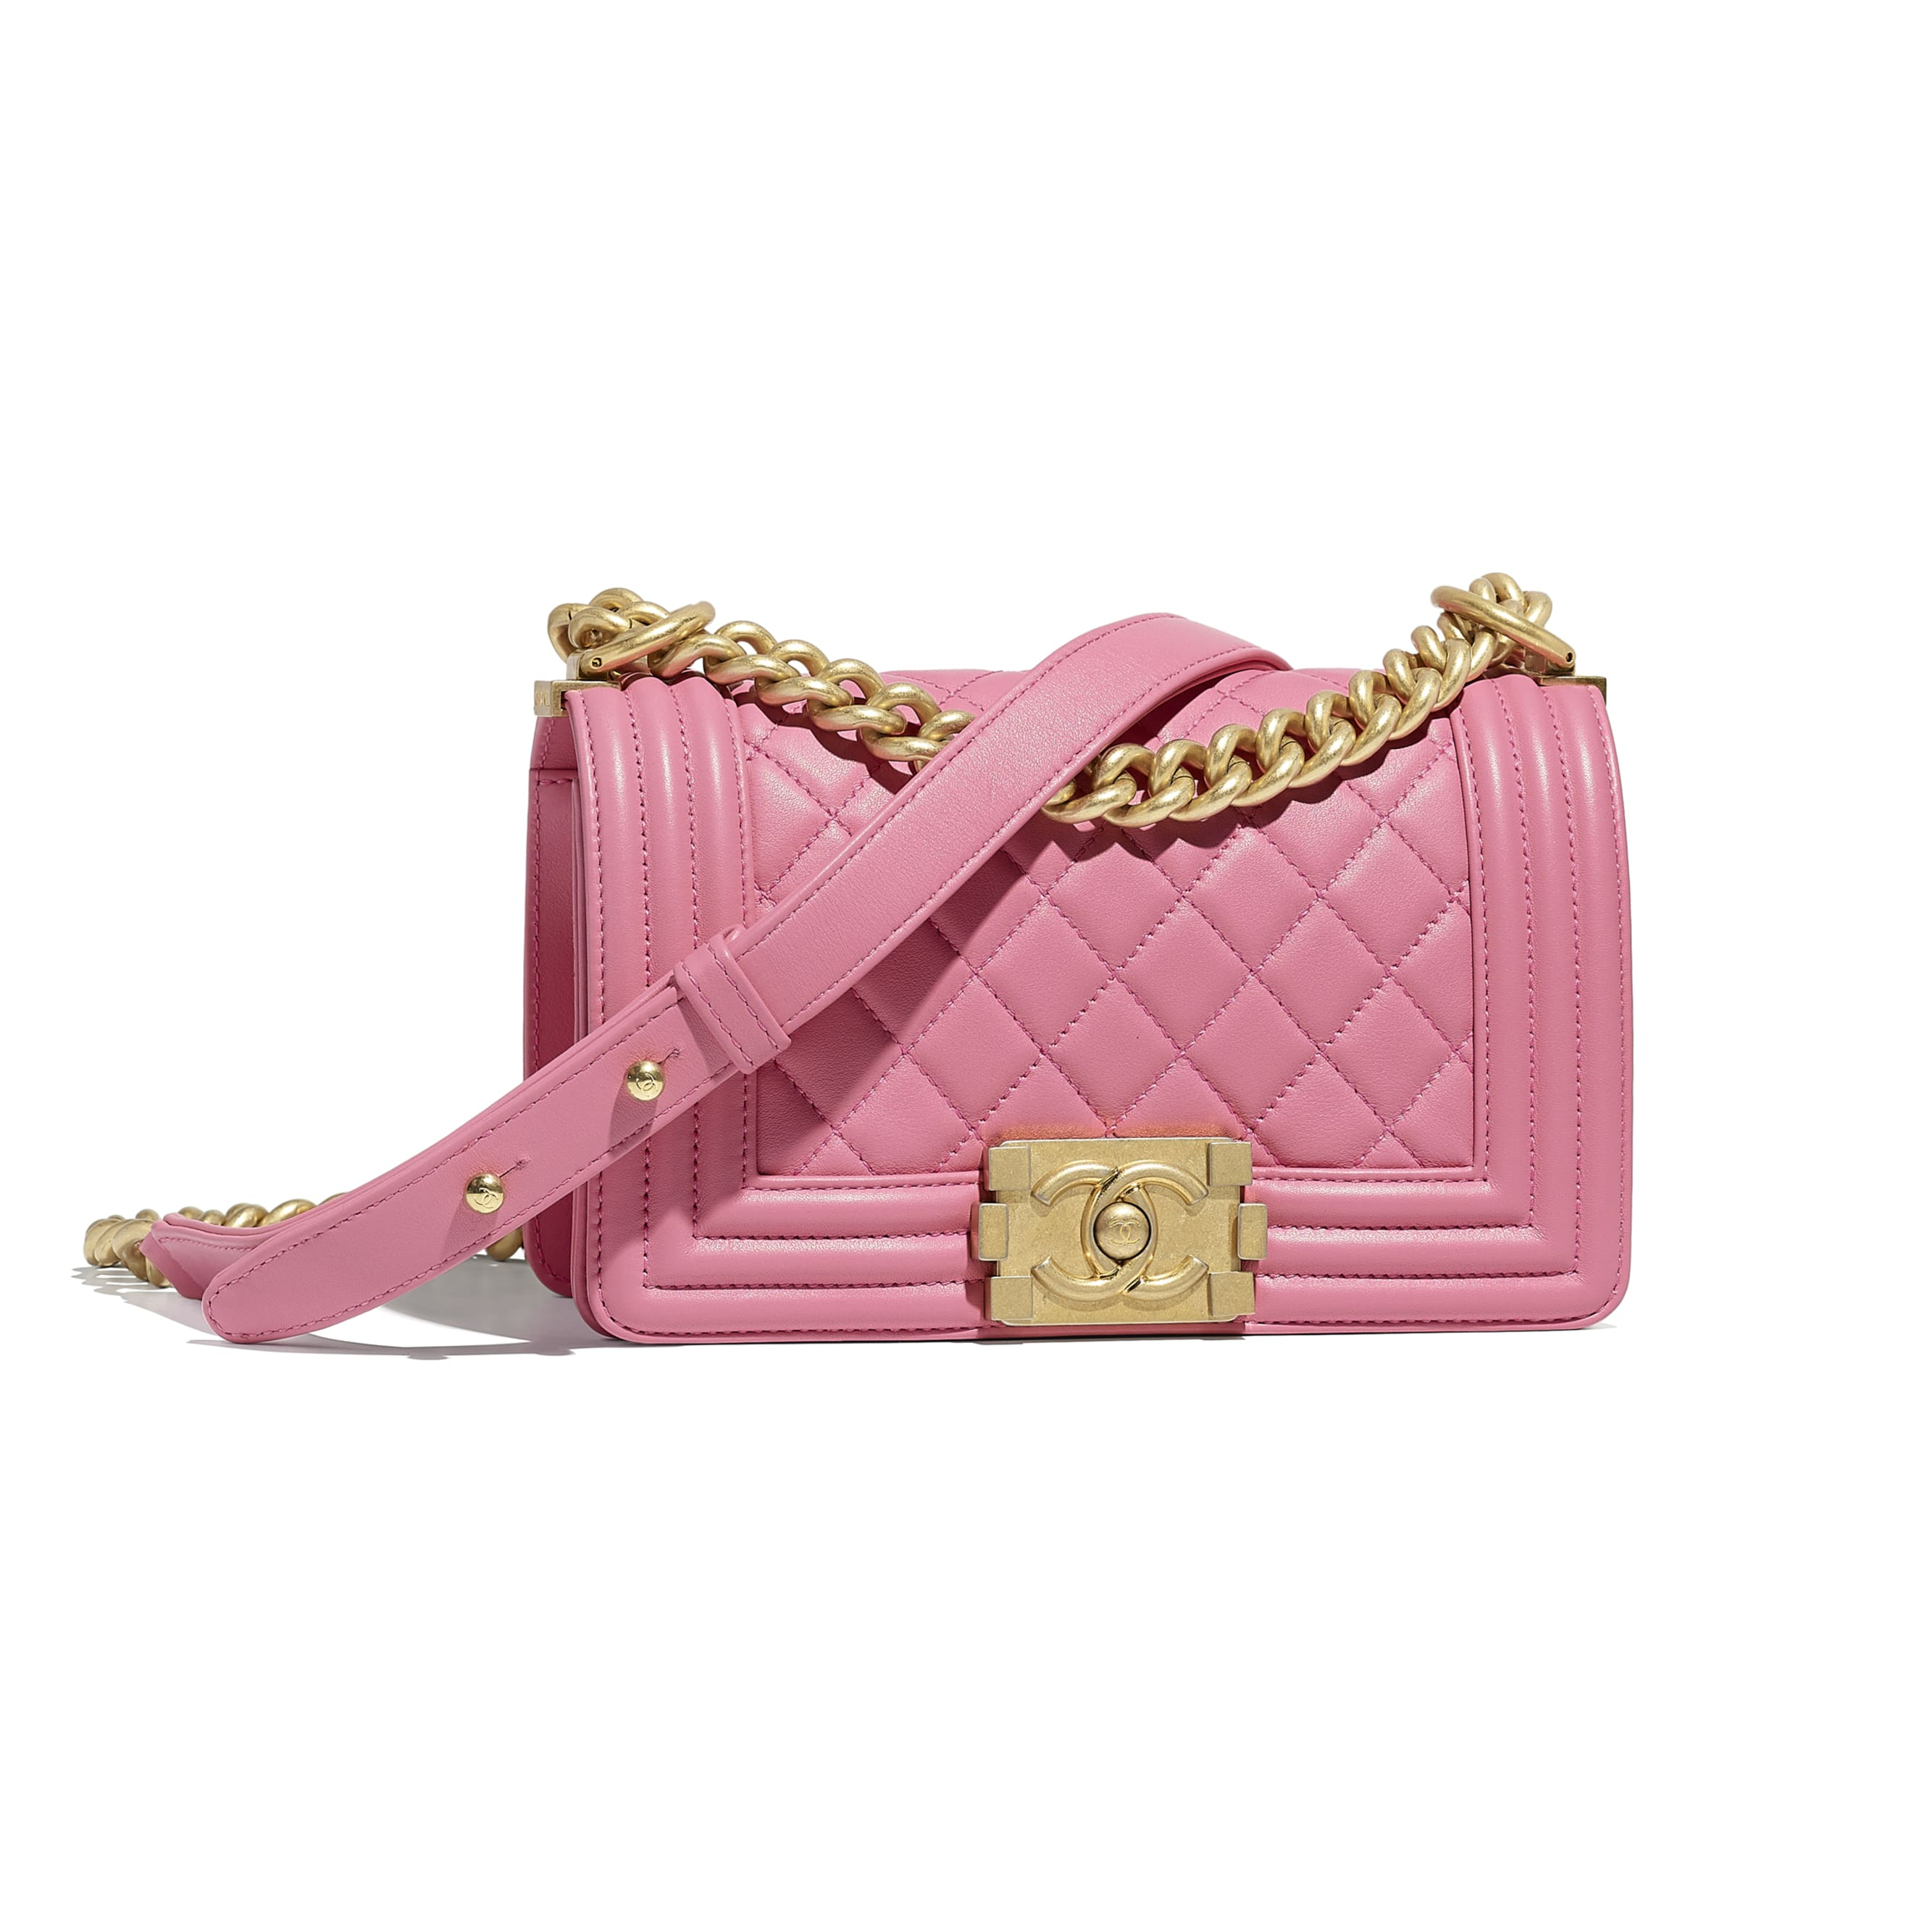 Small BOY CHANEL Handbag - Pink - Calfskin & Gold-Tone Metal - Default view - see standard sized version